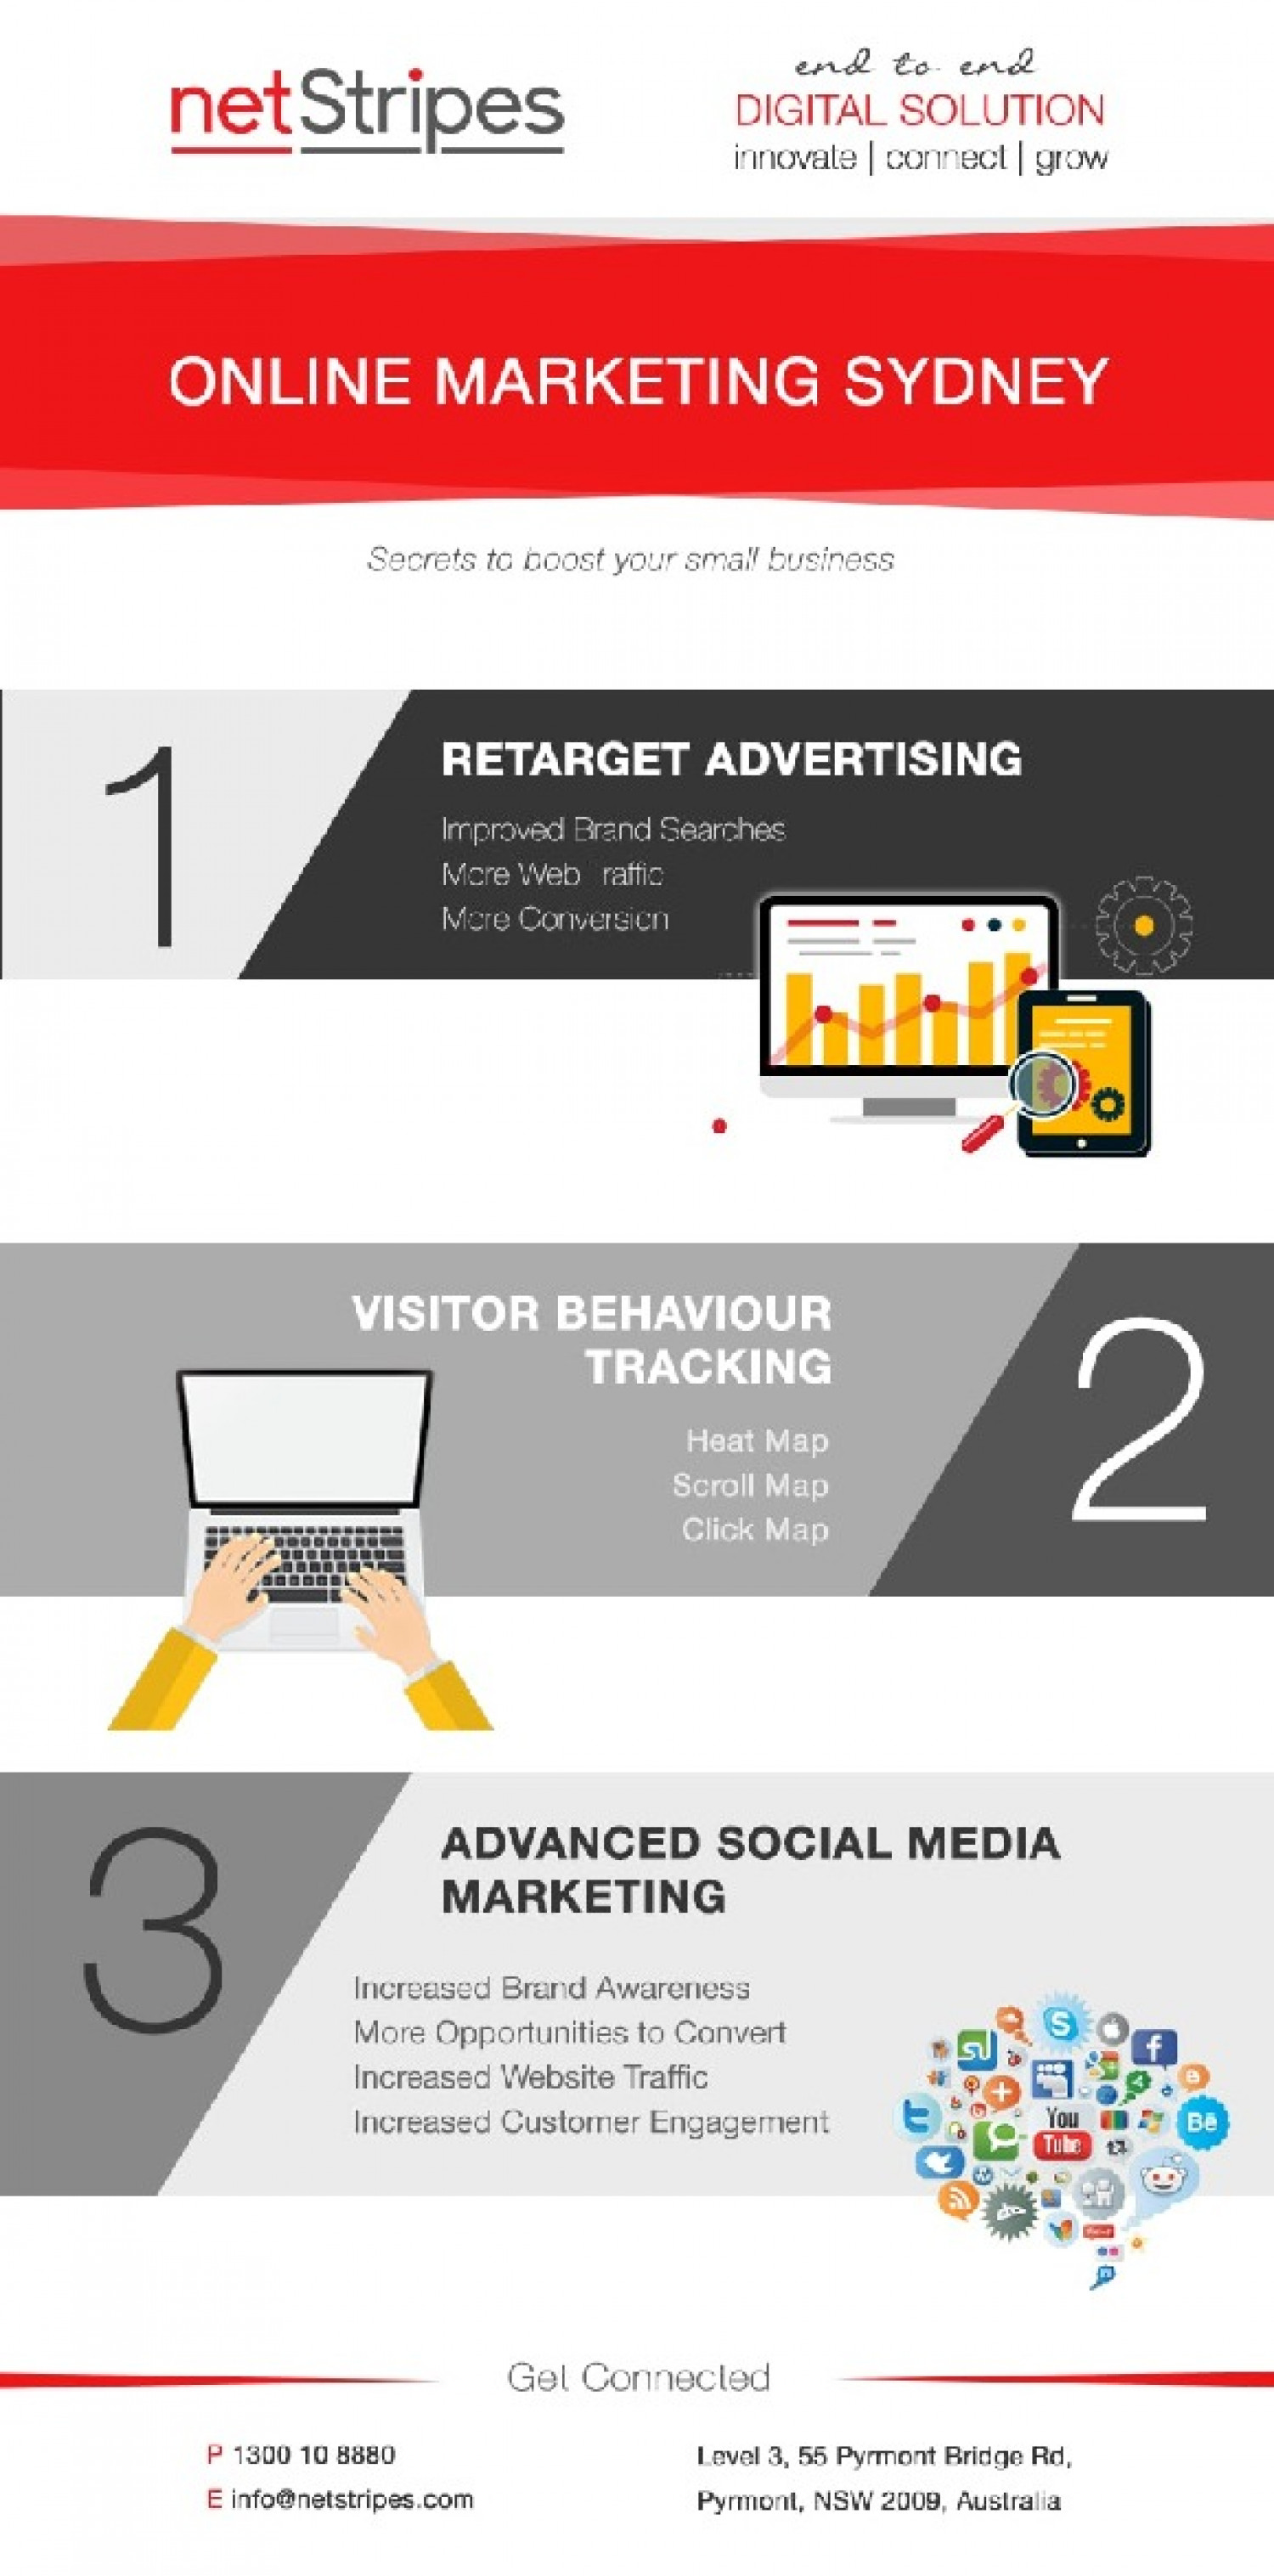 3 Secrets to boost your small business with Online Marketing Sydney Infographic